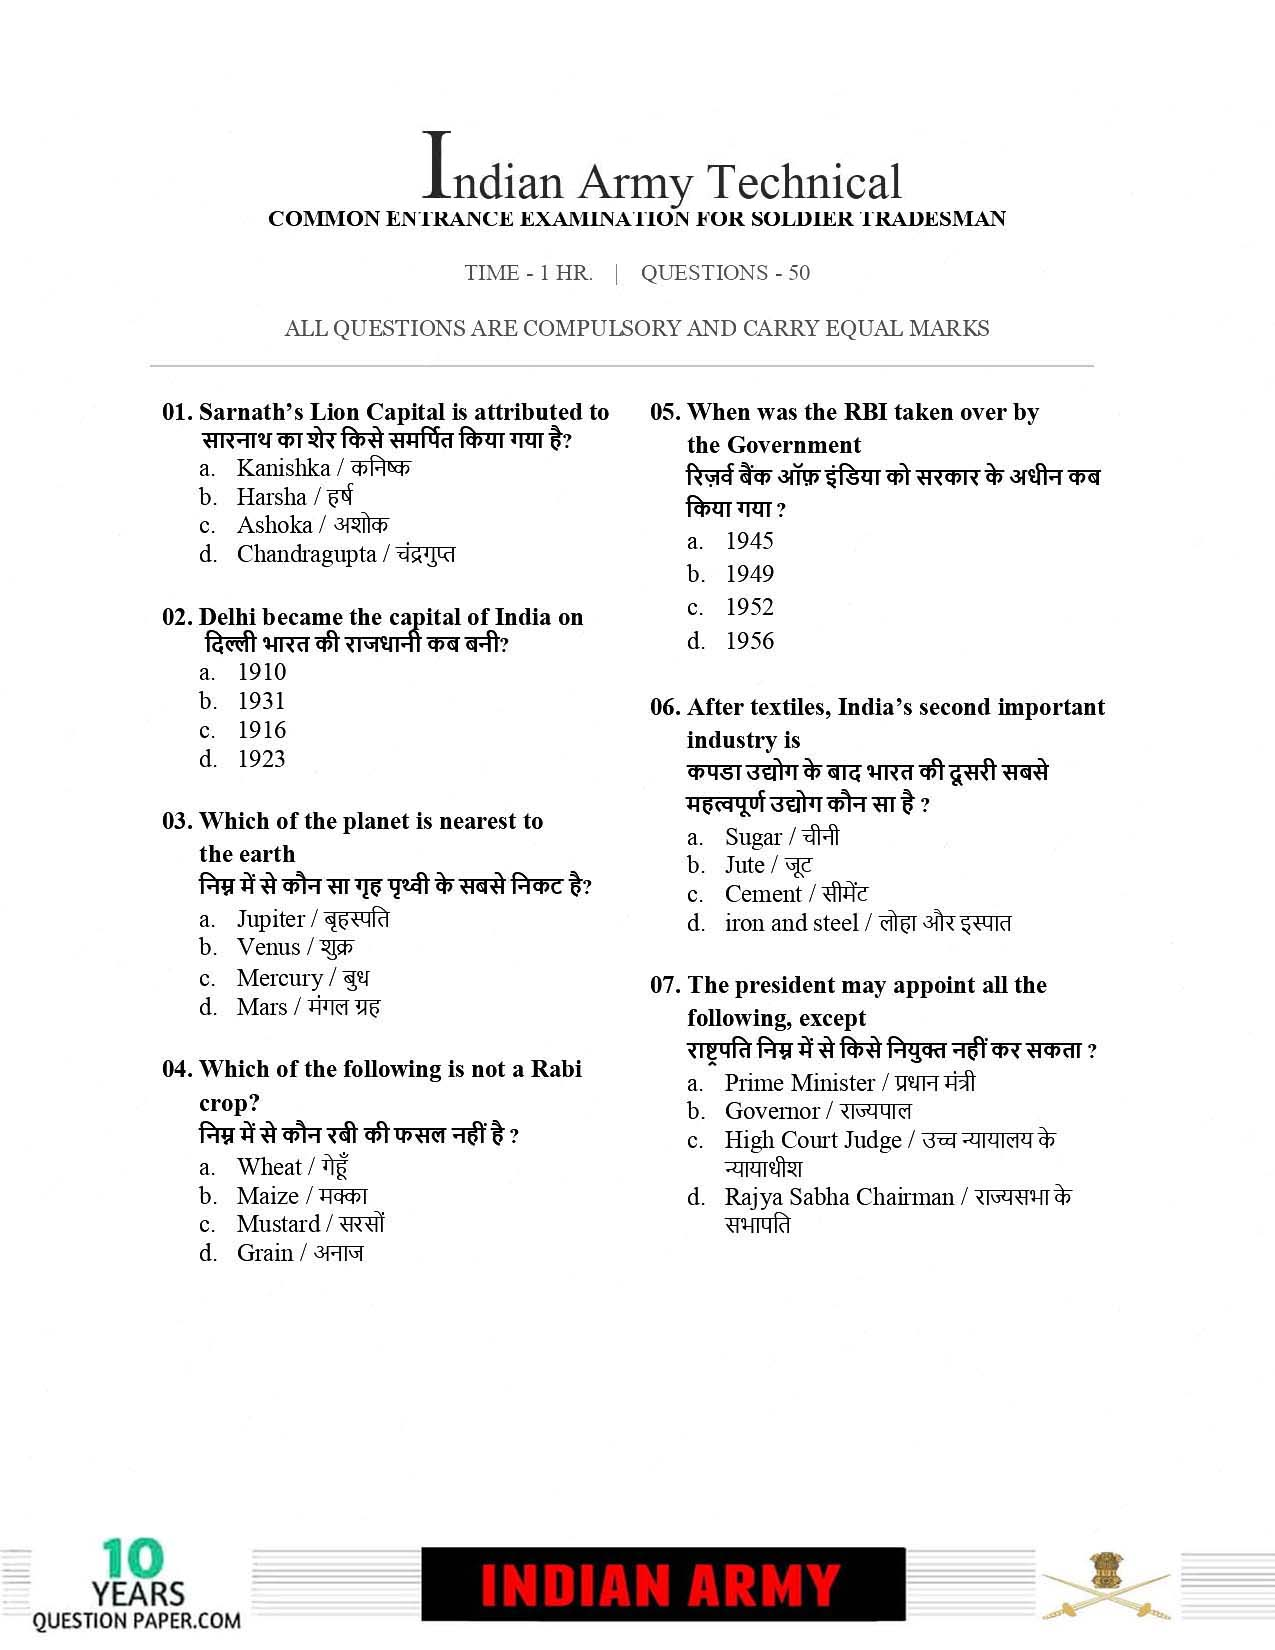 Indian Army Technical 2019 Question Paper with Answer Key